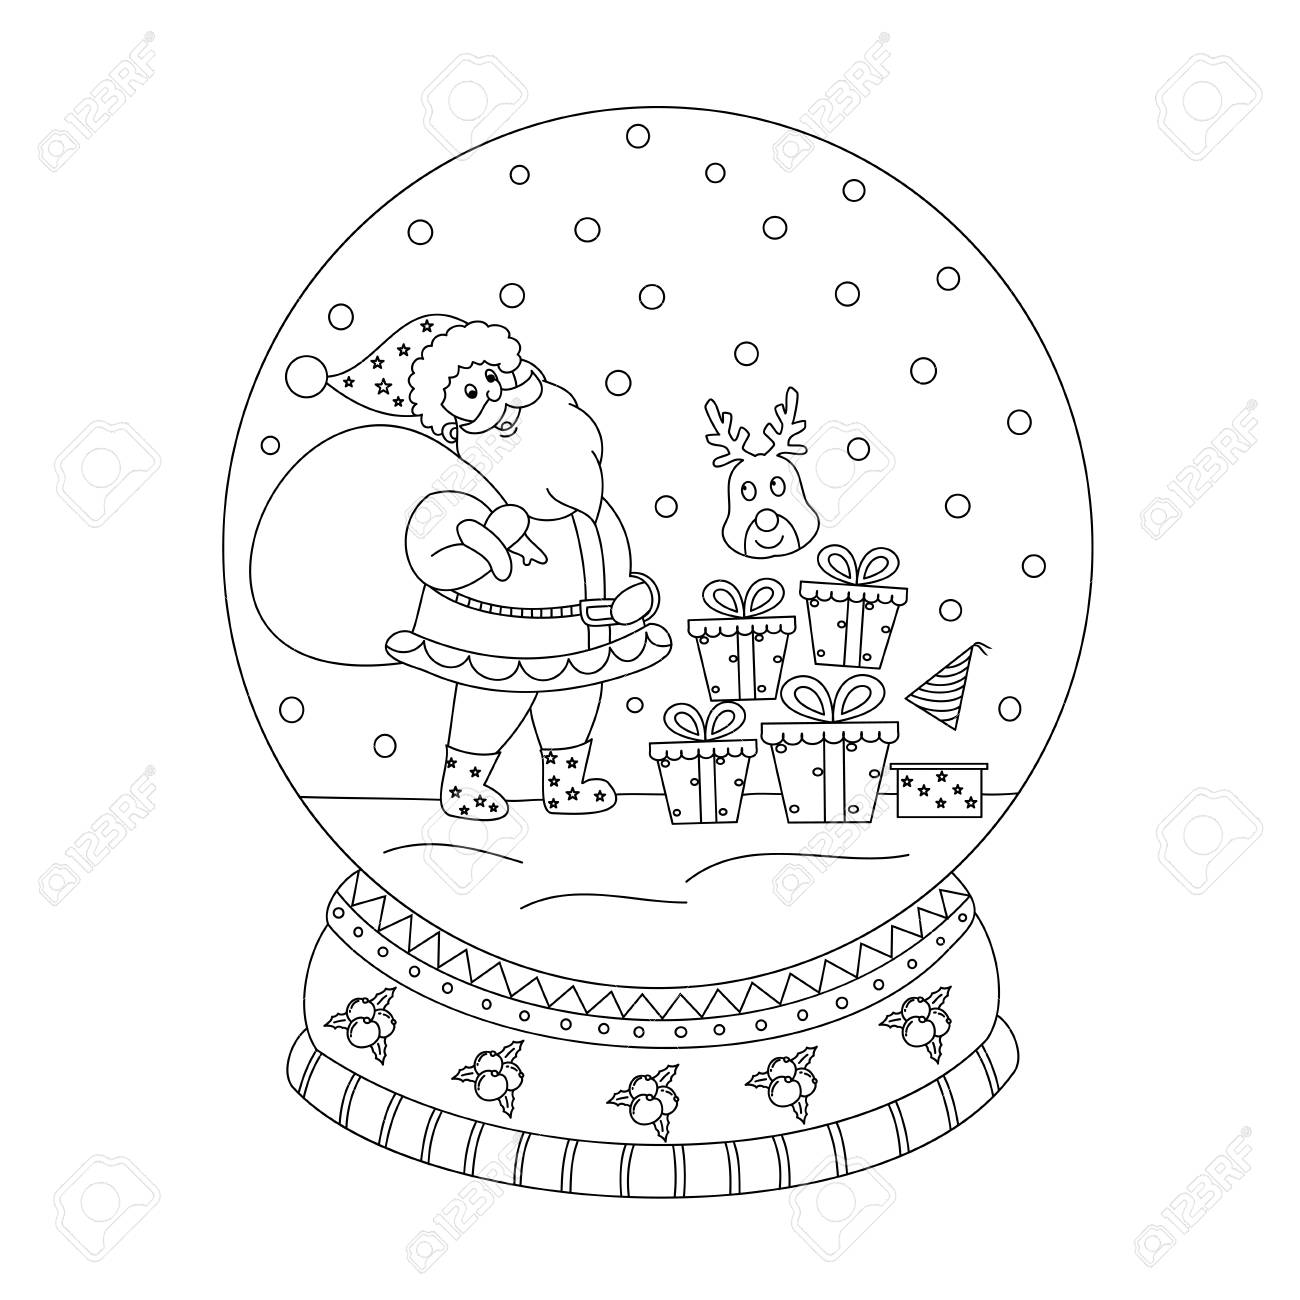 Coloring Book Page Of Christmas Snow Globe With Santa Claus Royalty Free Cliparts Vectors And Stock Illustration Image 100204469